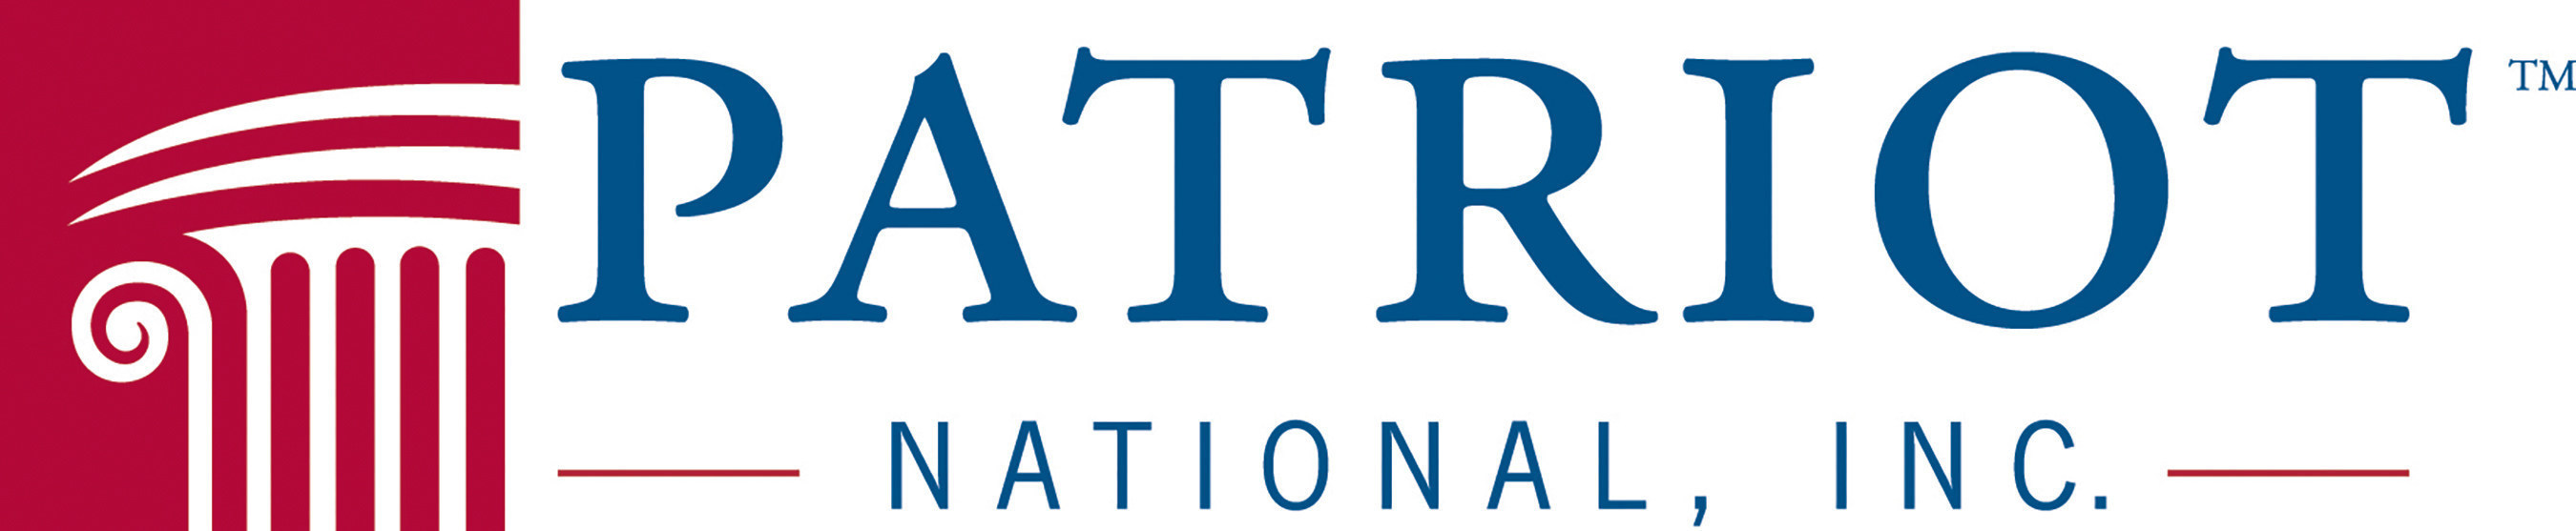 Patriot National, Inc. is an insurance service holding company founded by Fort Lauderdale based entrepreneur Steven Michael Mariano. Patriot National, Inc. is a leading provider of Workers' Compensation and Managed Care Services.